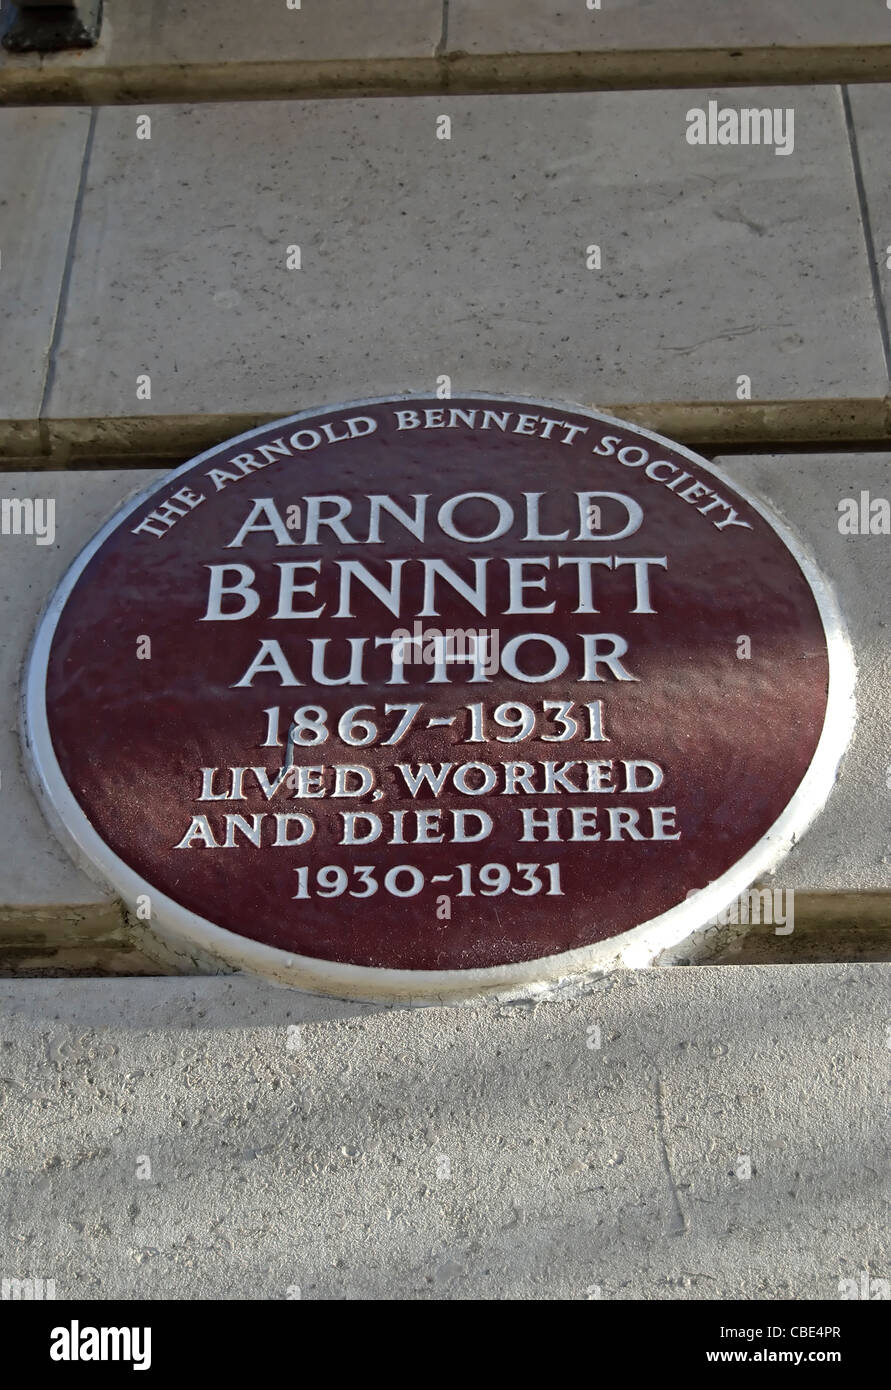 arnold bennett society plaque marking a home of the author at chiltern court, baker street, london, england - Stock Image